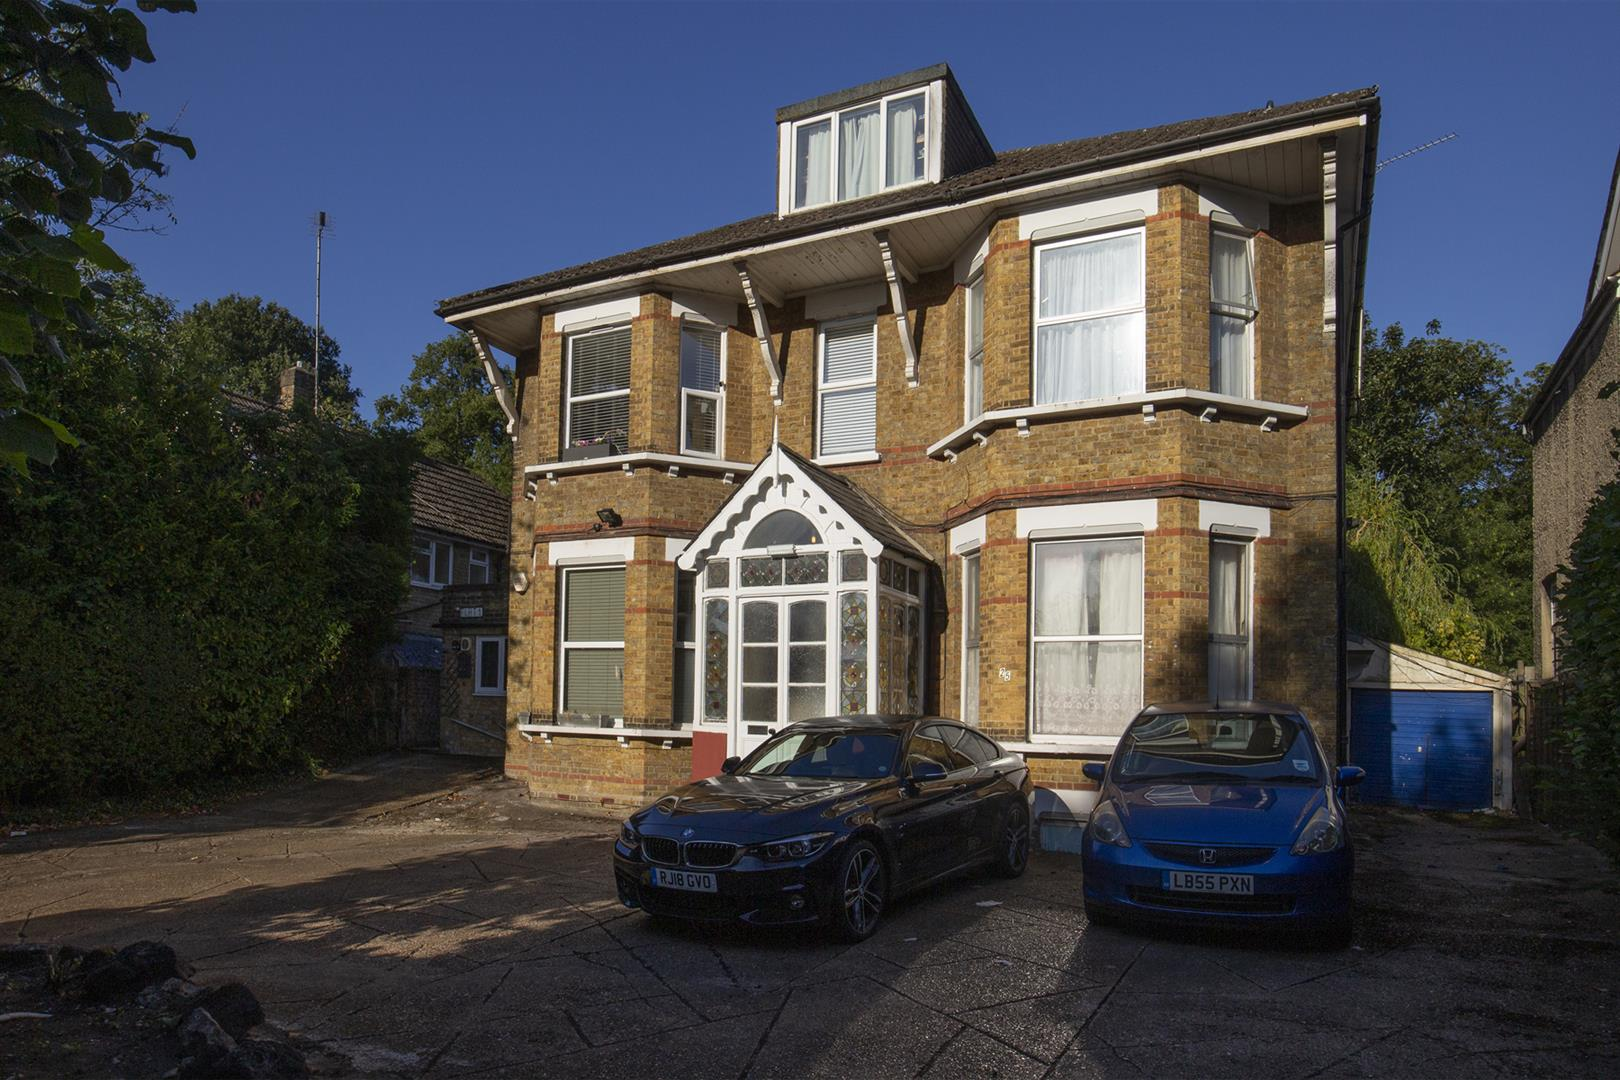 Flat - Conversion Sale Agreed in St. Augustines Avenue, South Croydon, CR2 654 view2